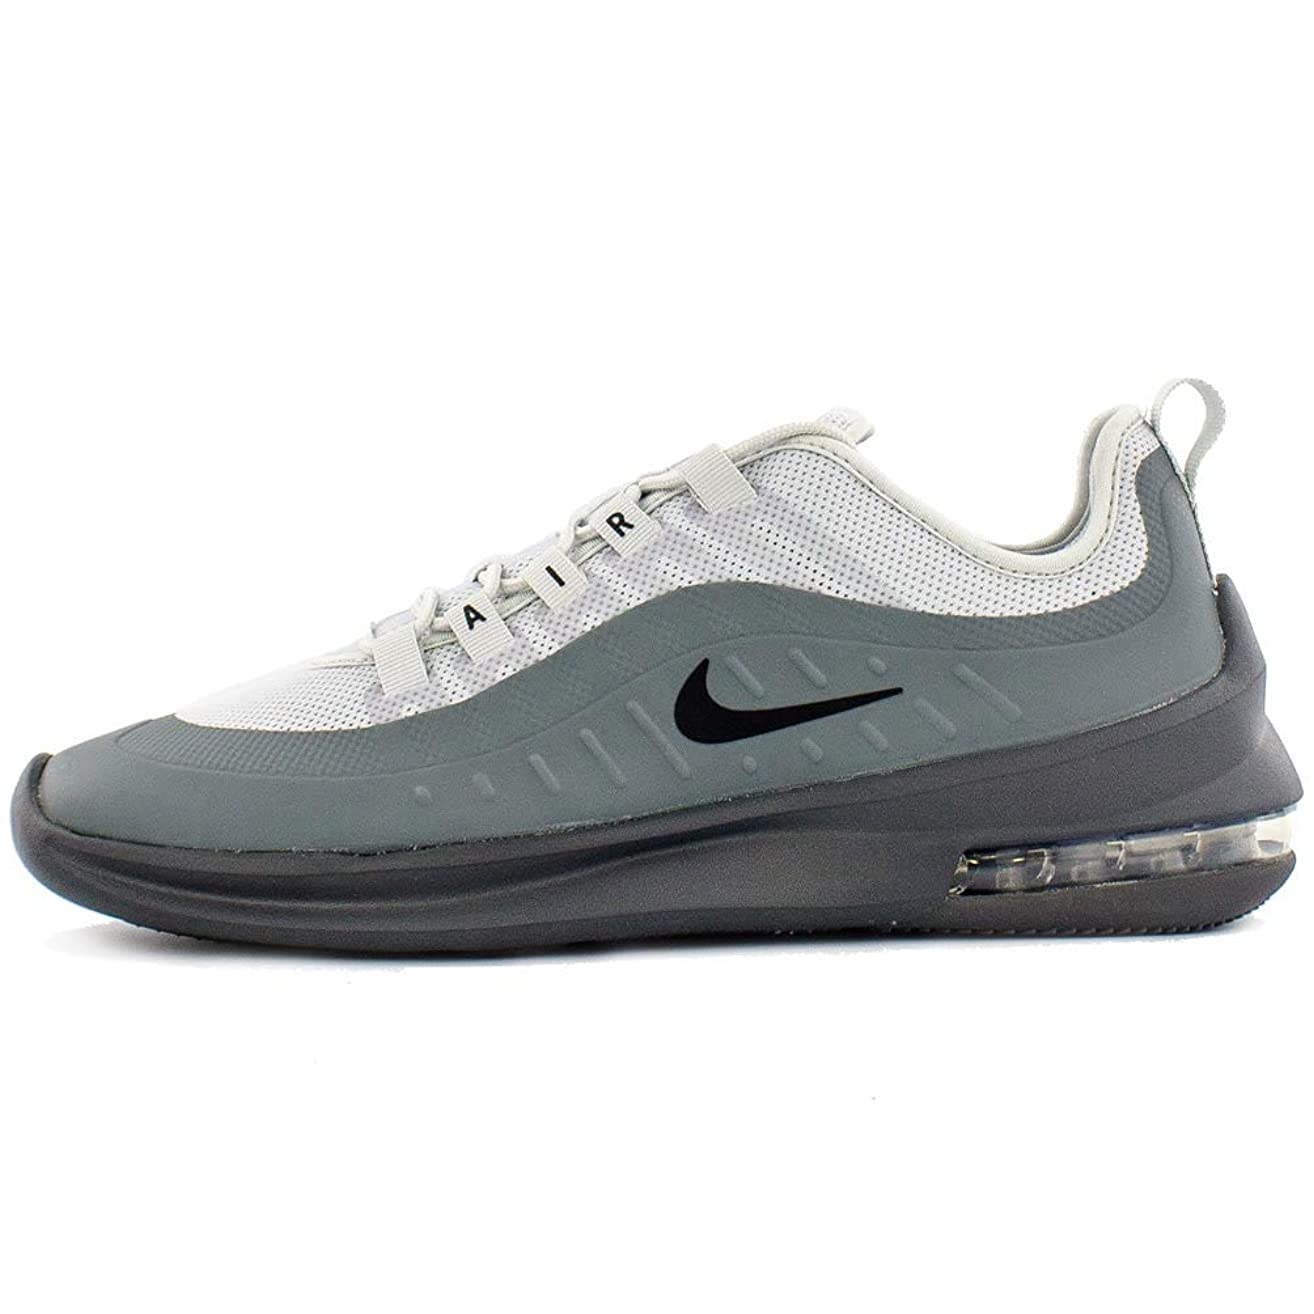 Nike Men's Air Max Axis Pure Platinum/Black/Dark Grey Size 11.5 M US